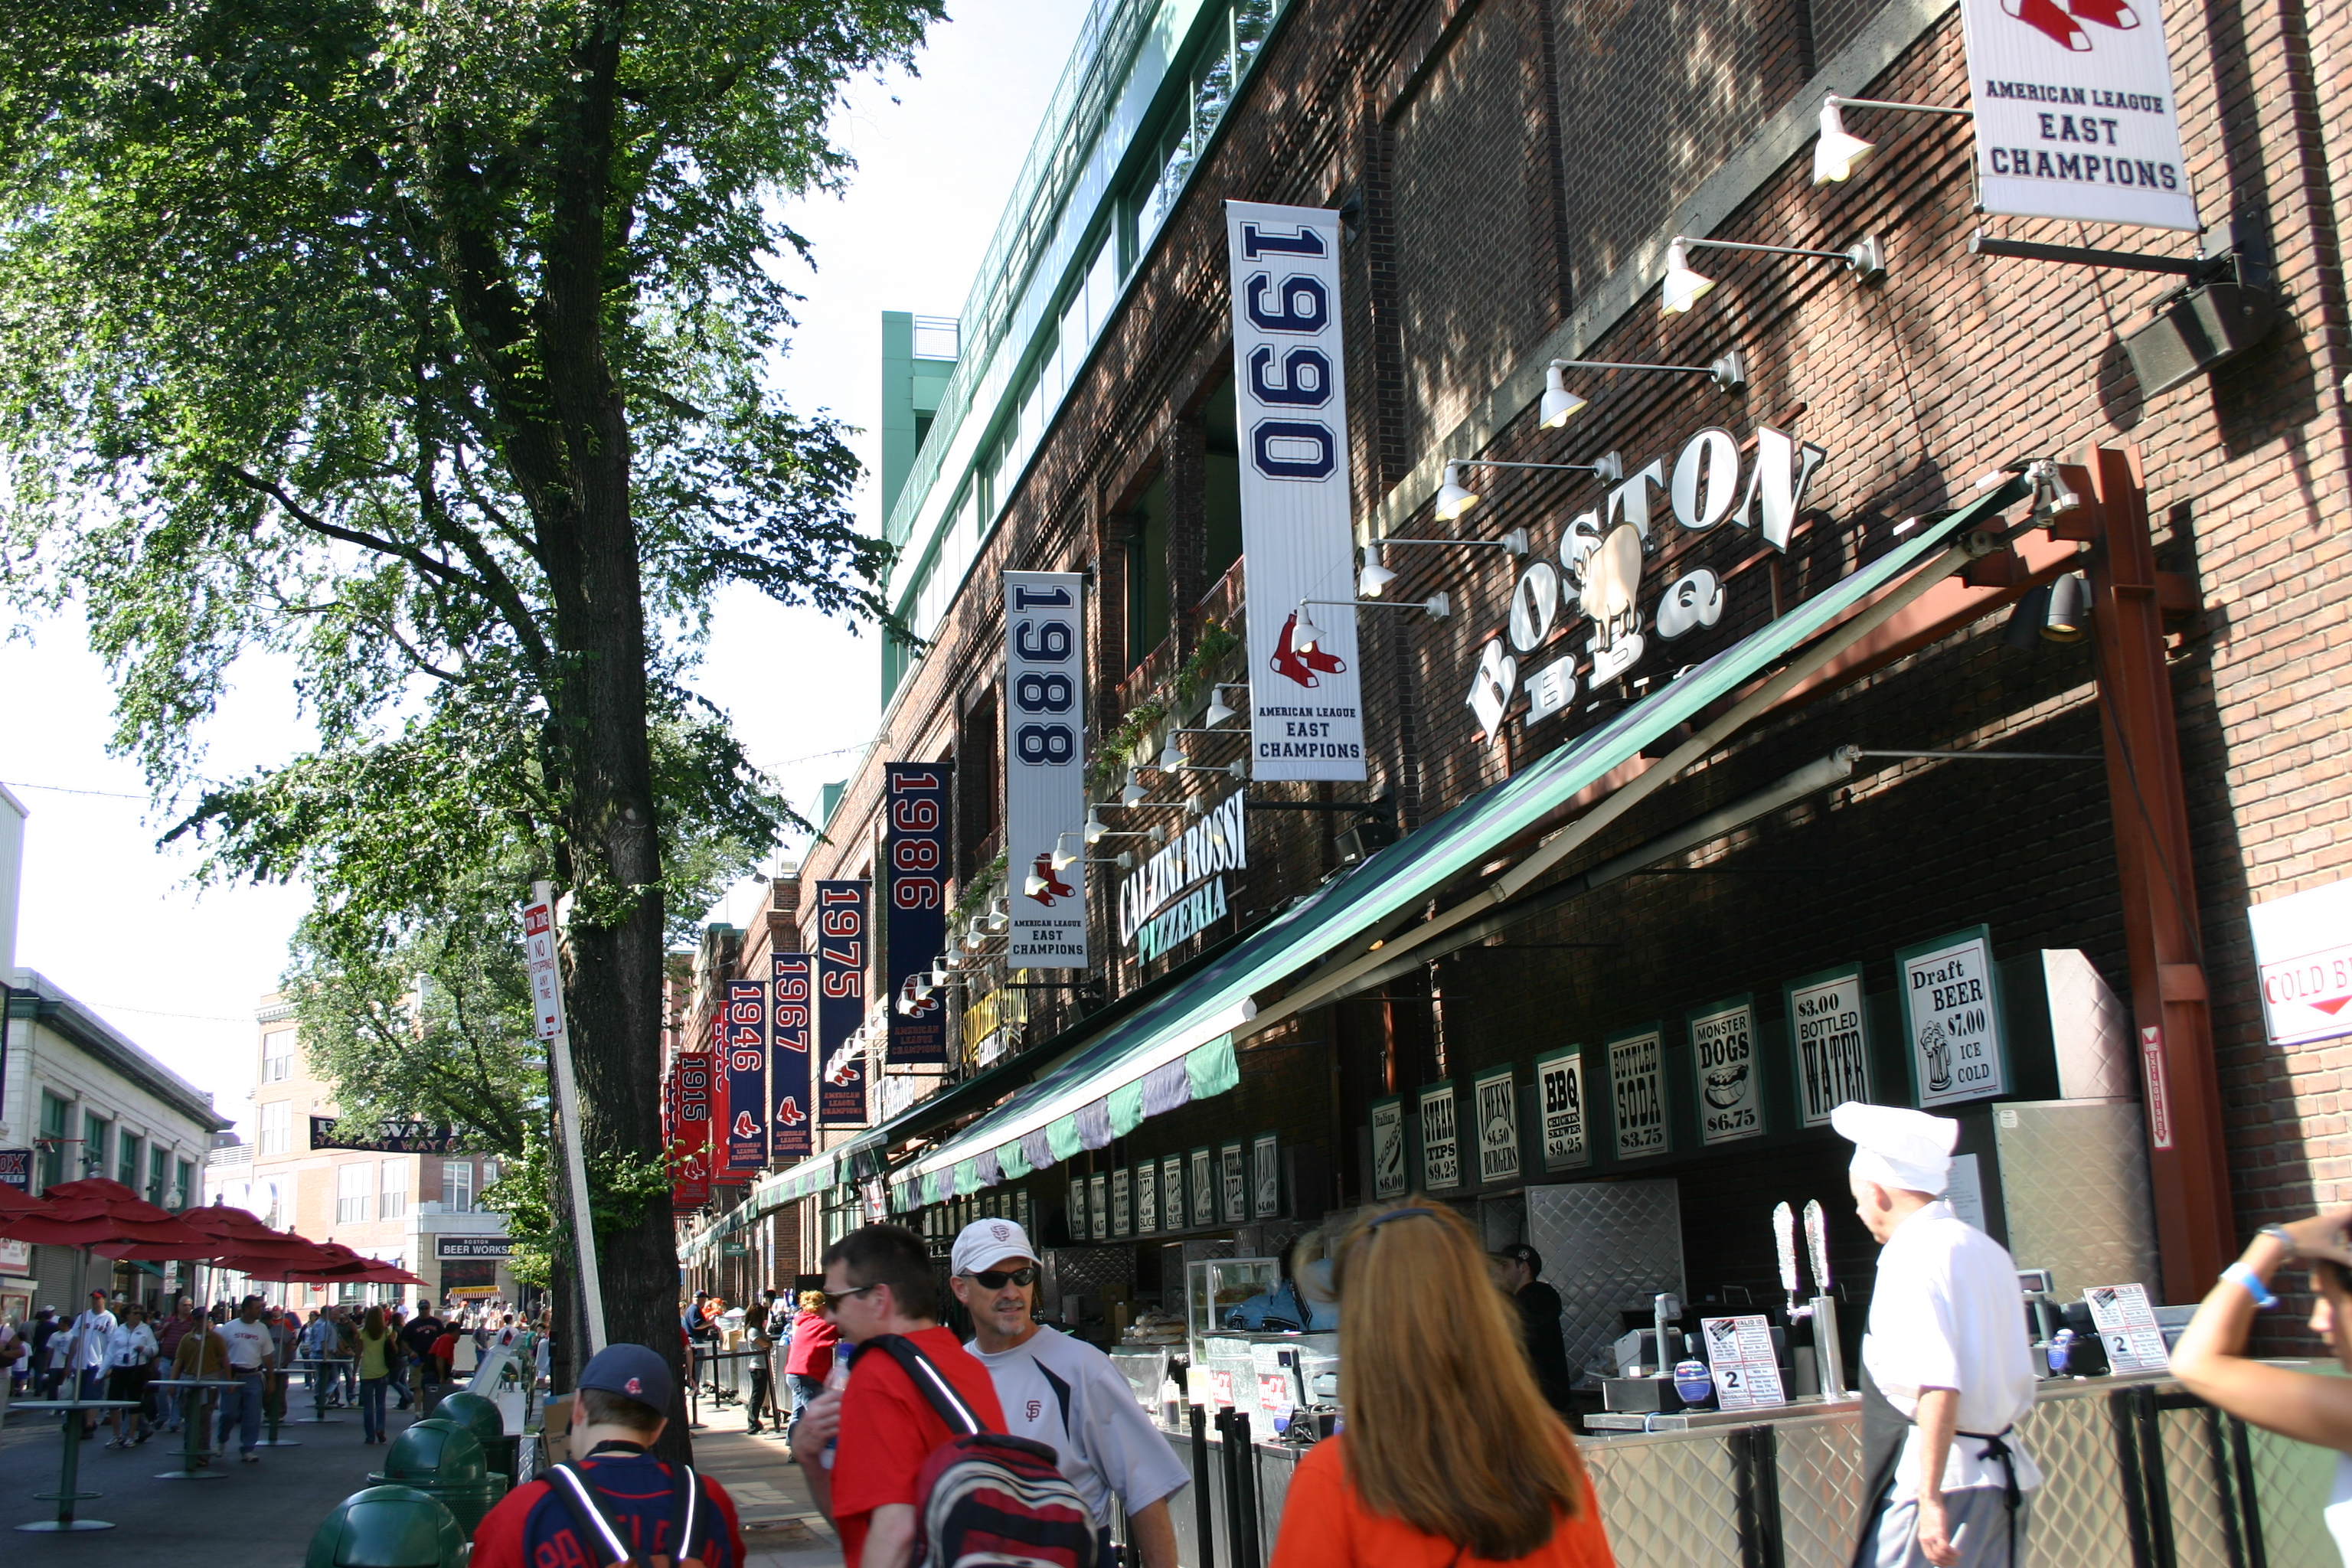 Fenway Park,Yawkey Way,Red Sox,Boston,baseball trips